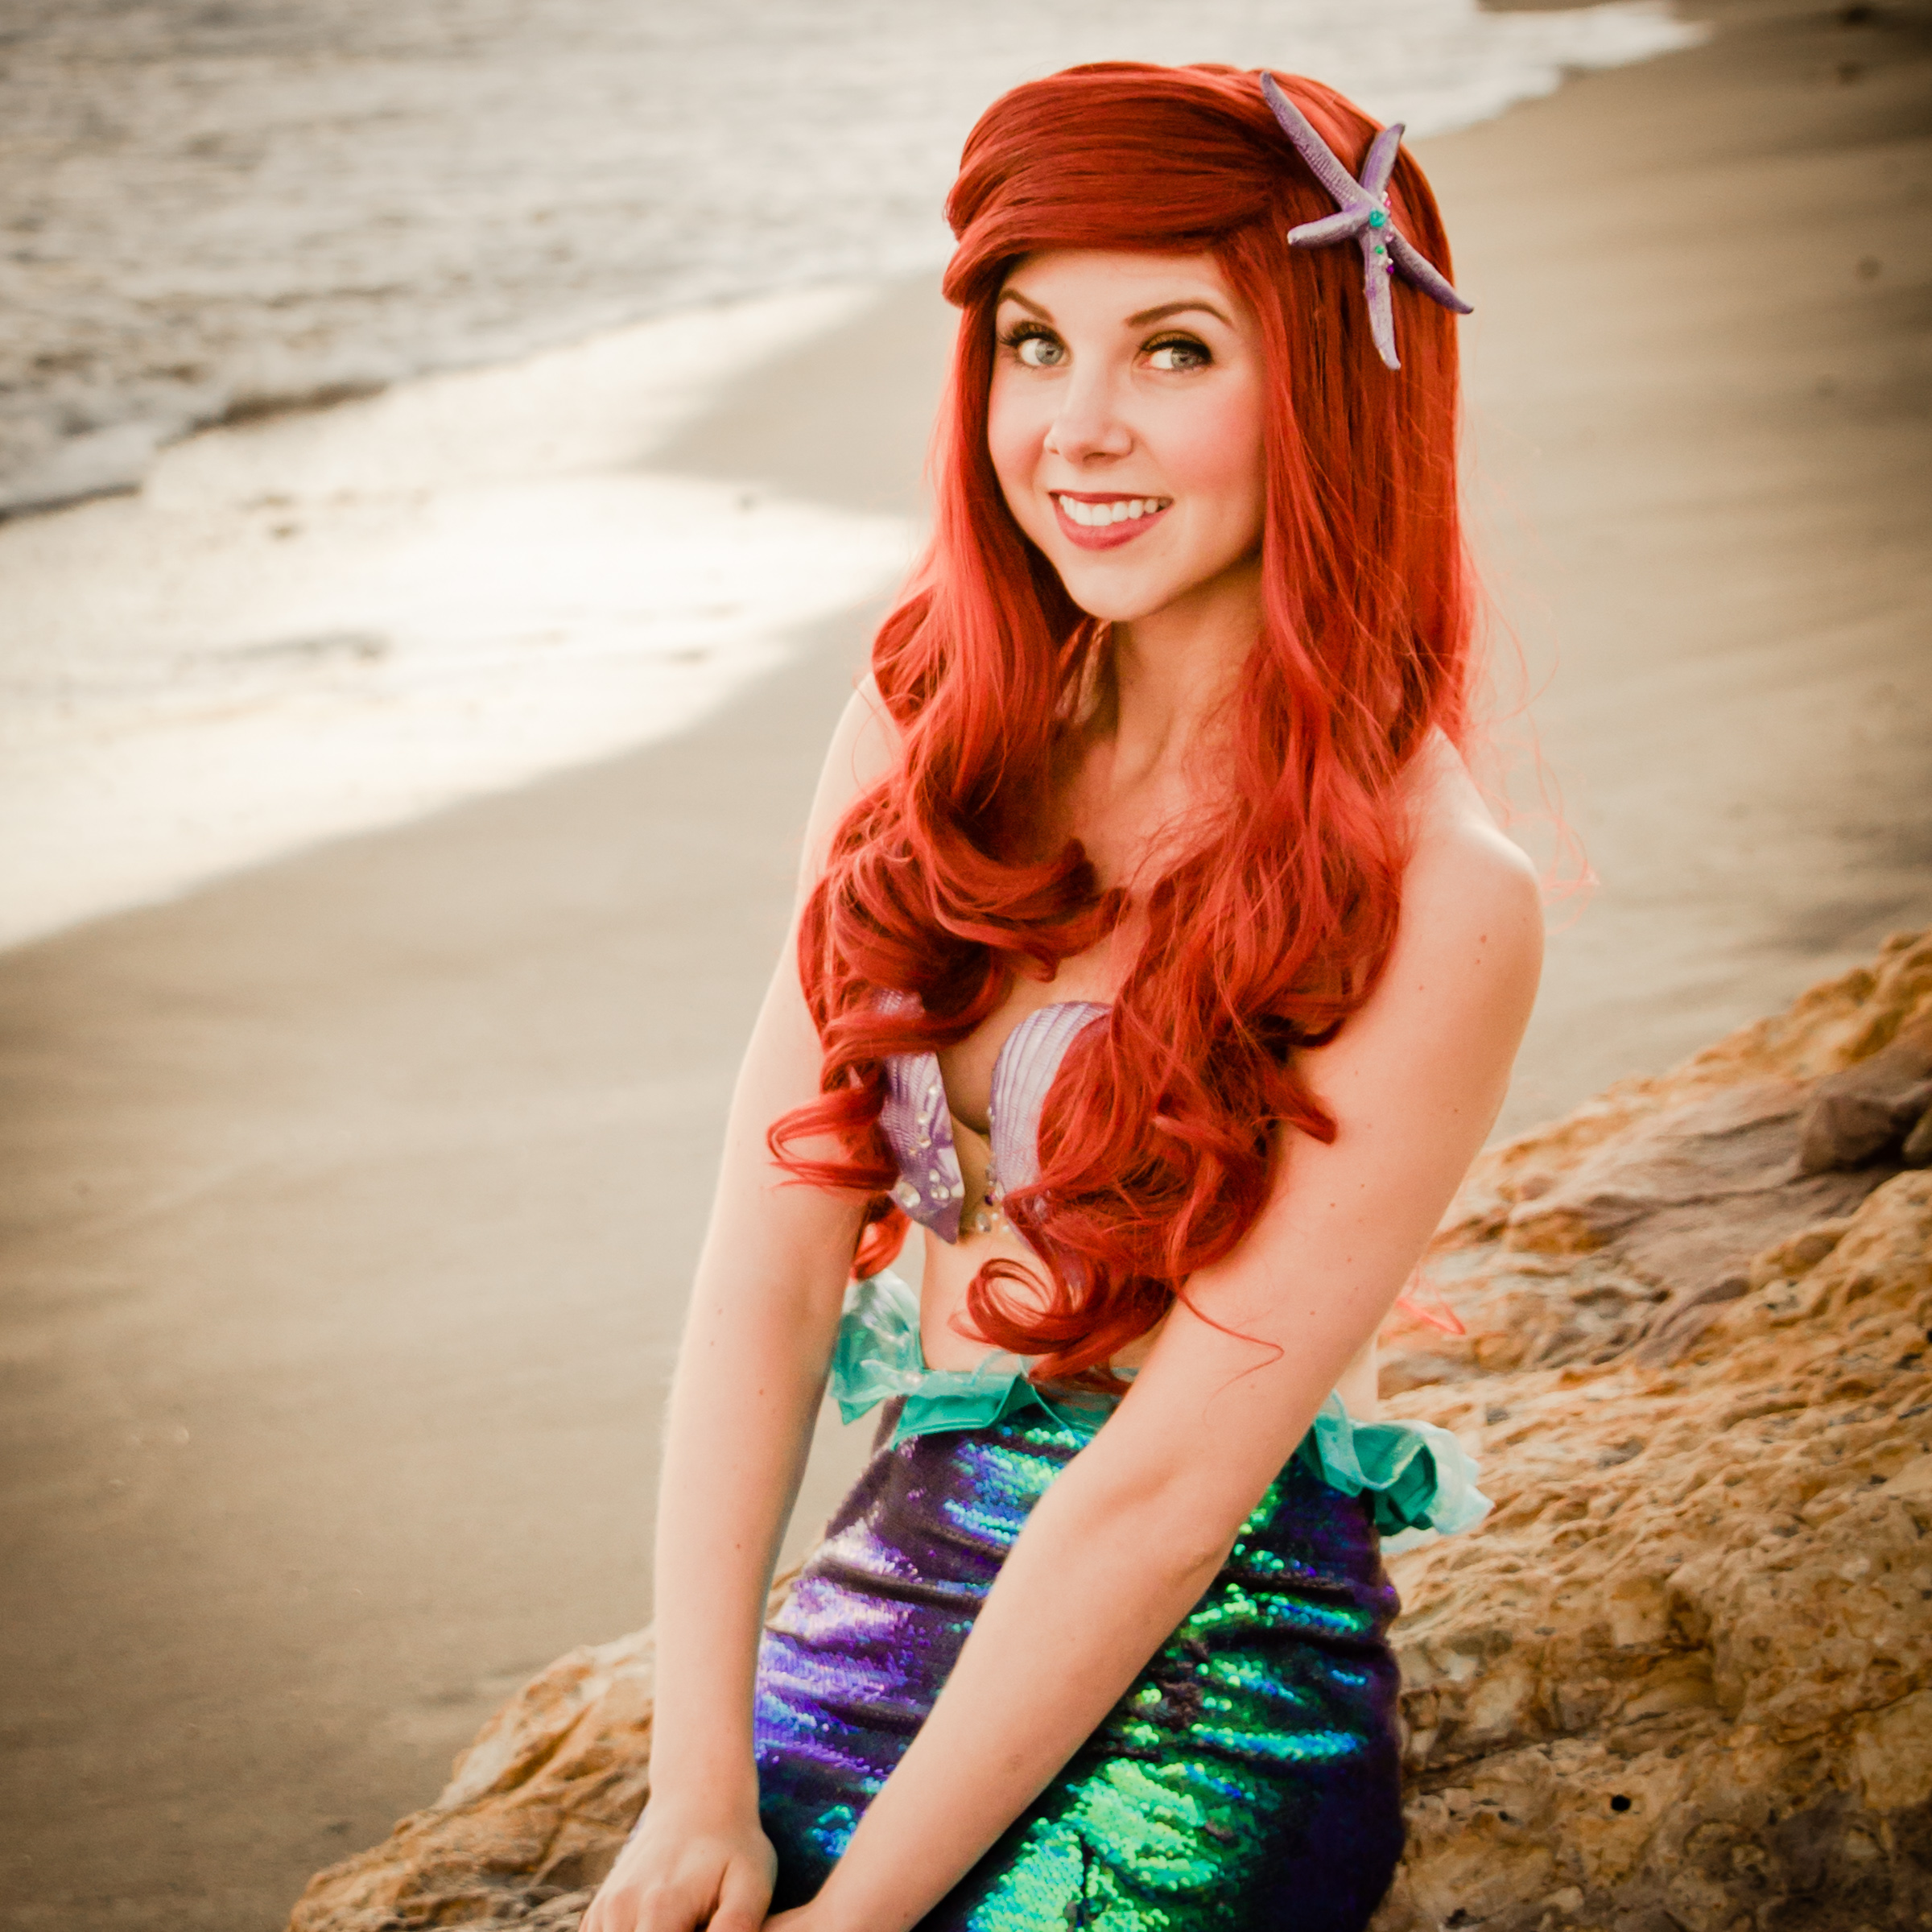 Little Mermaid princess party character Los Angeles